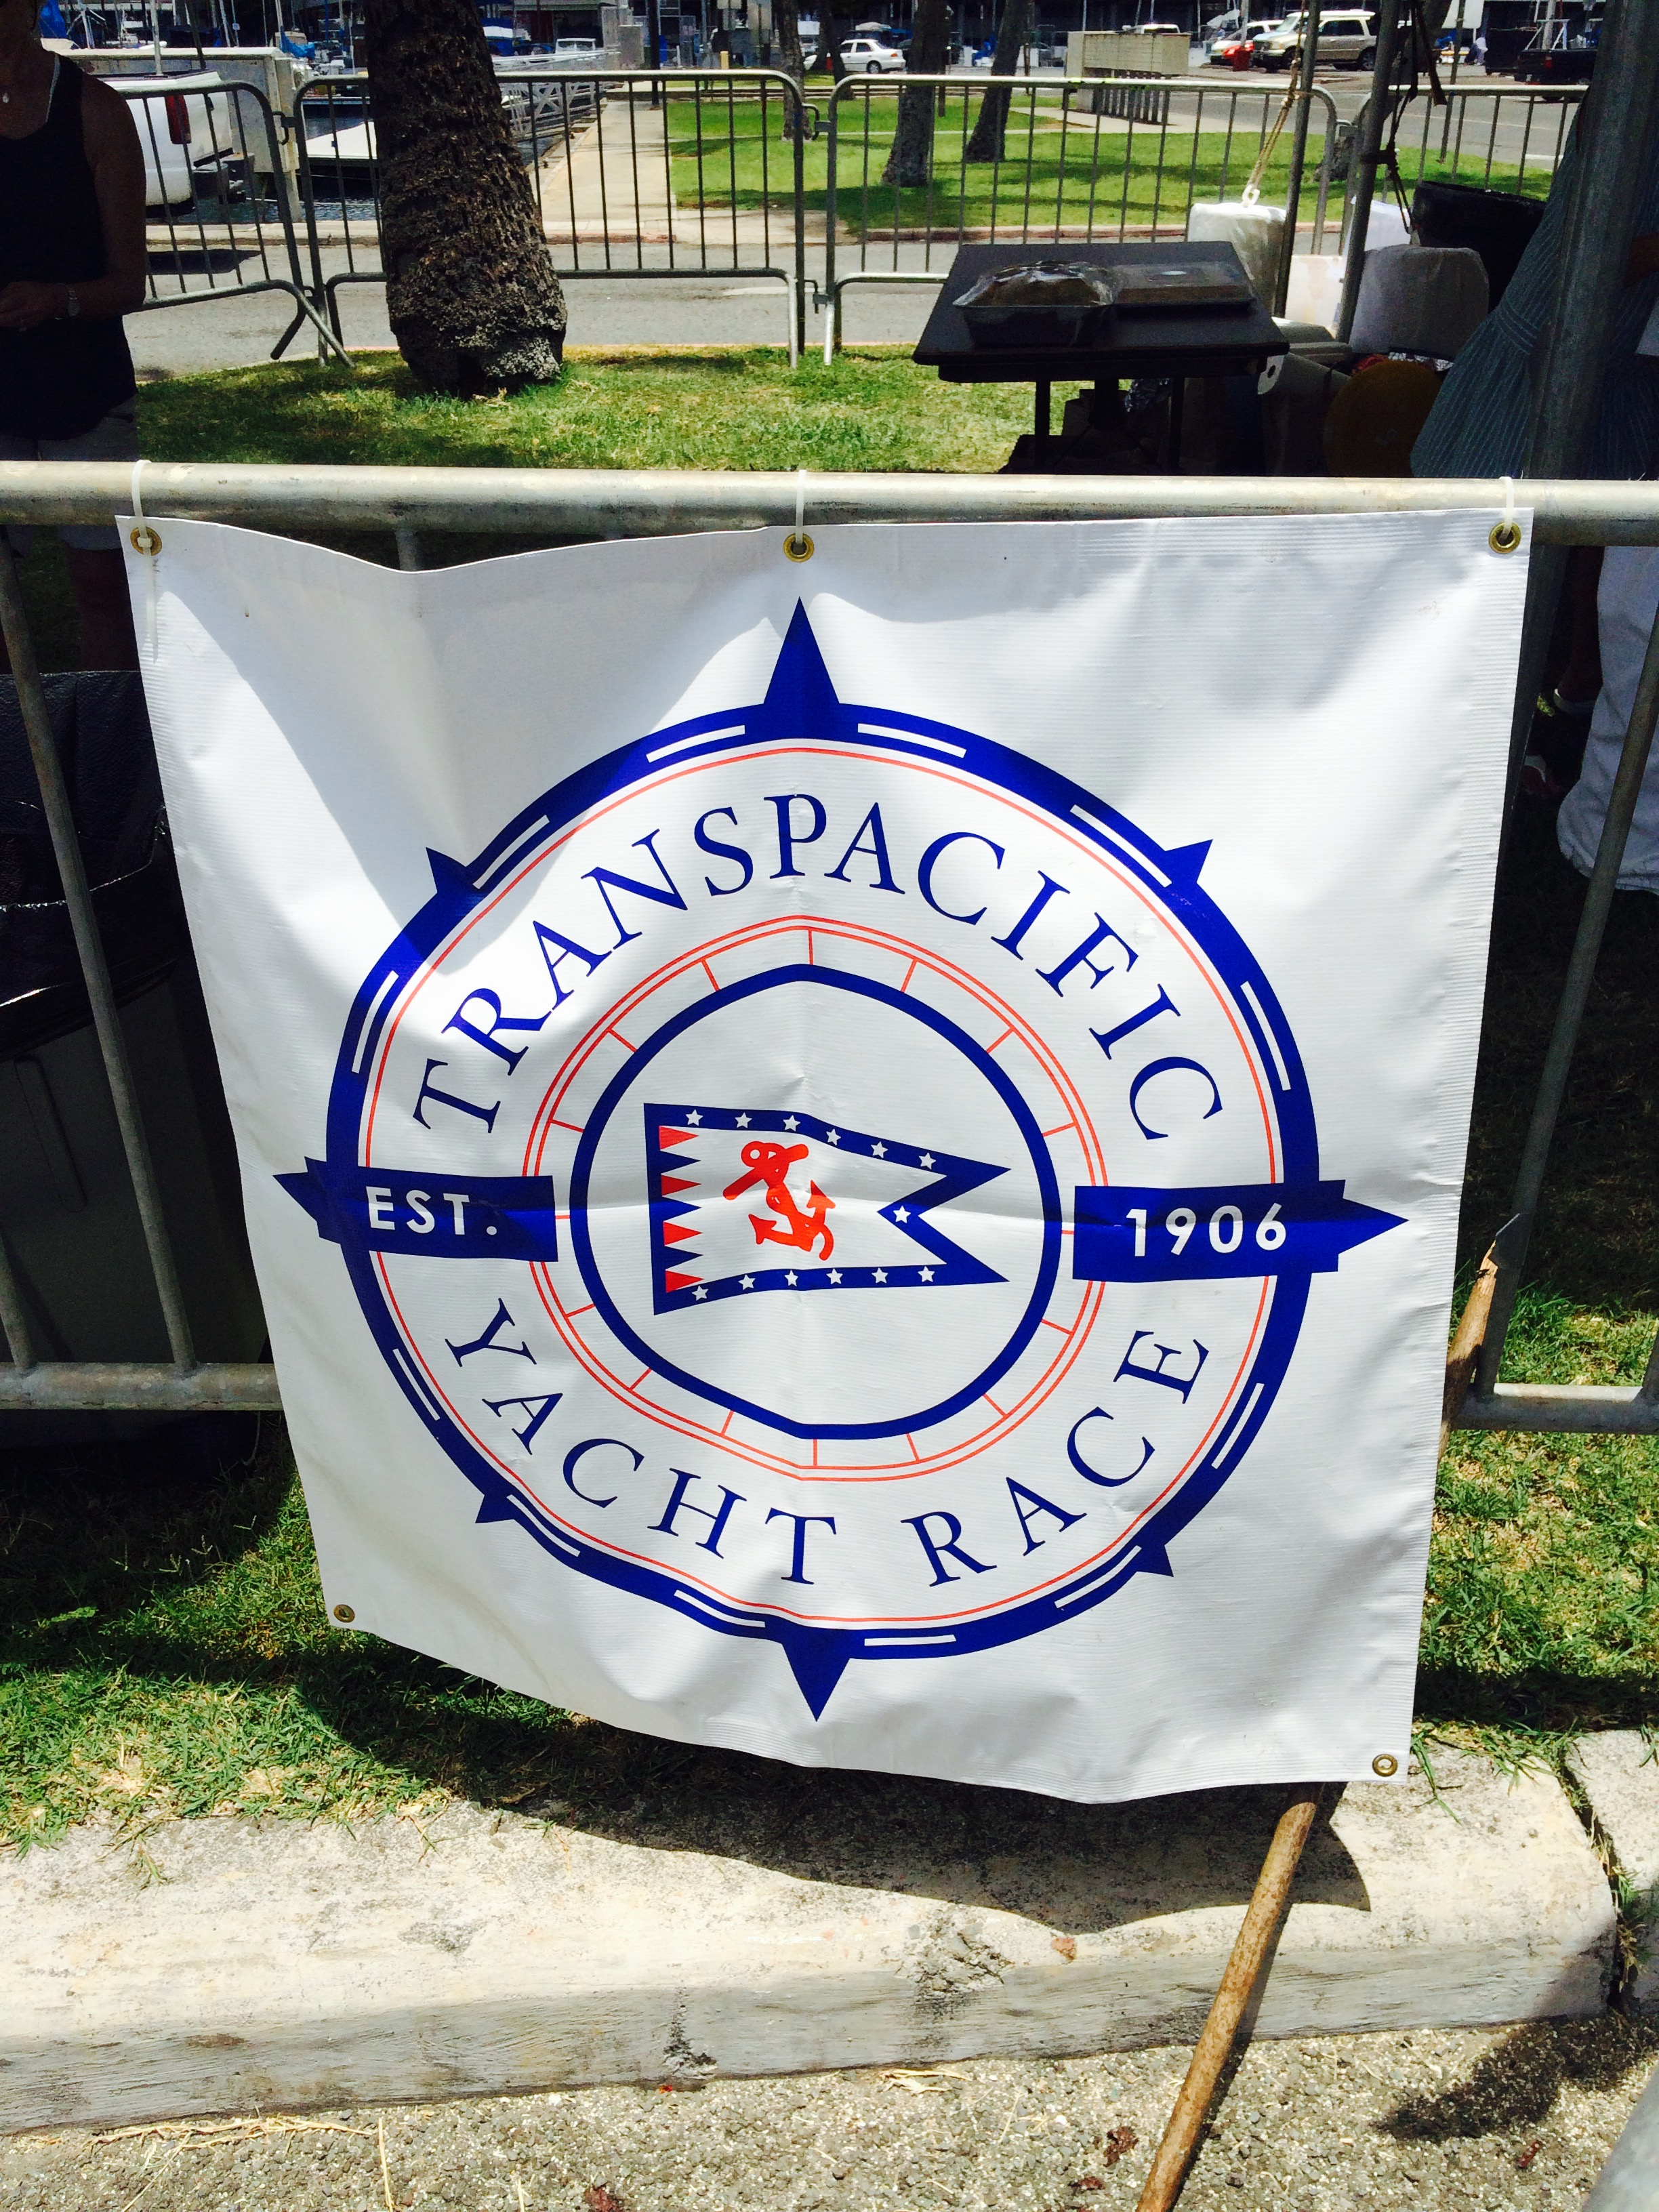 transpacific race 2015 sign